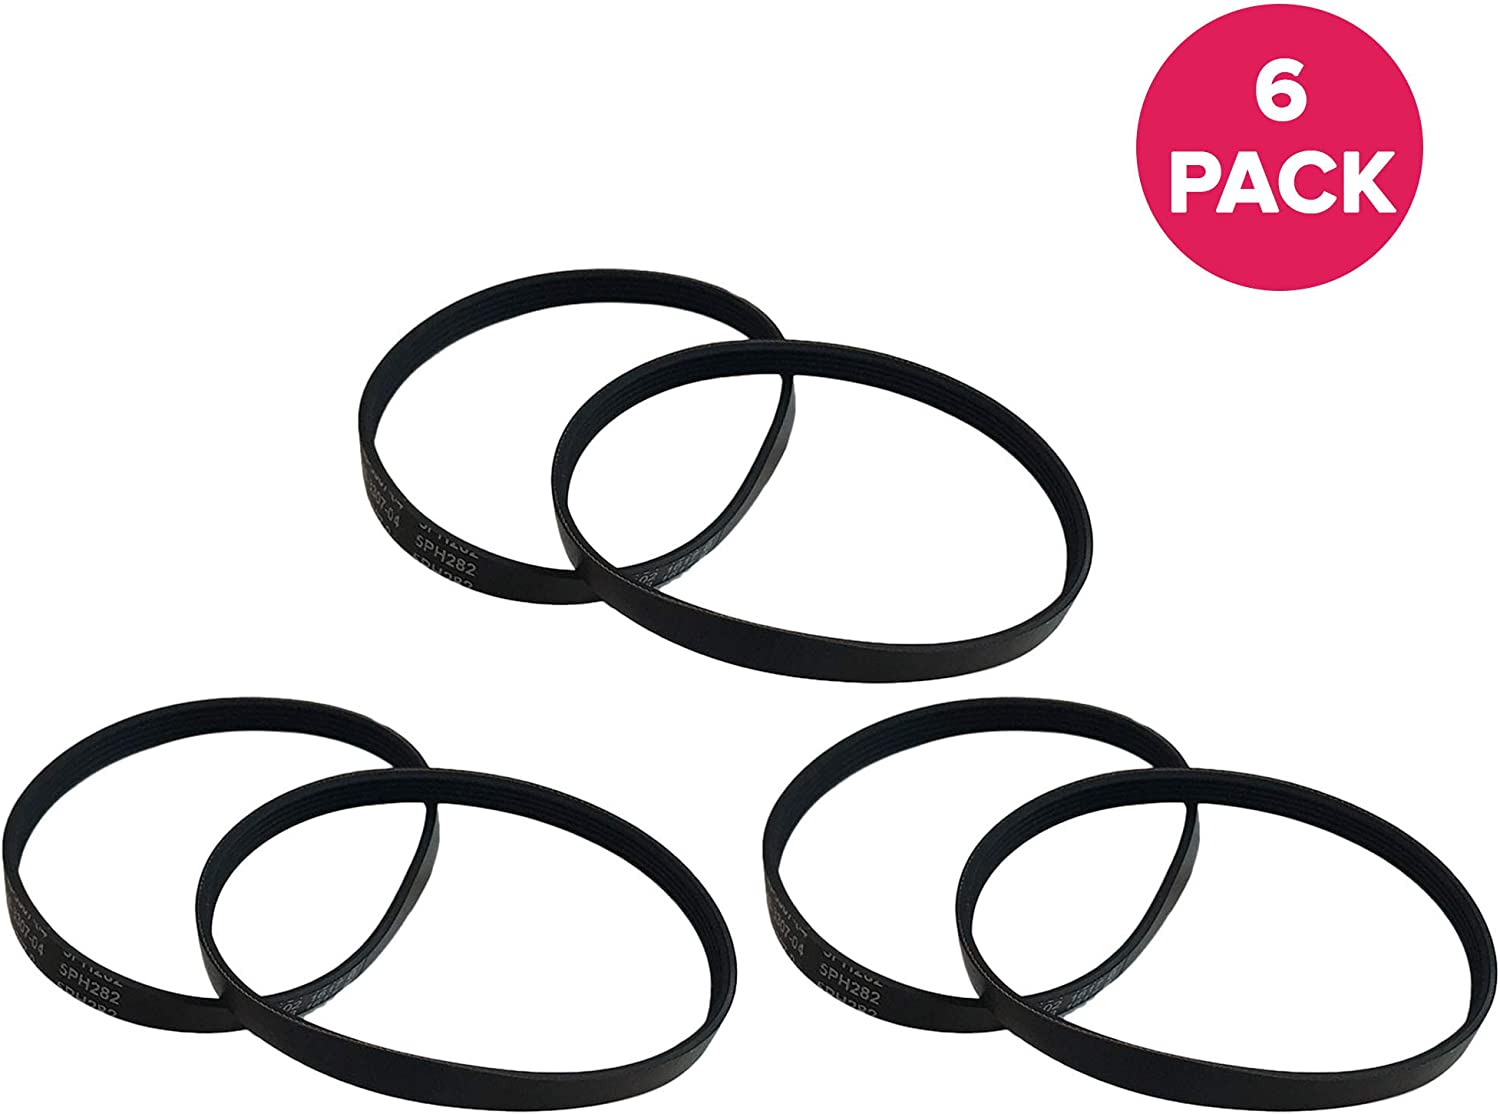 Crucial Vacuum Replacement Vacuum Belt - Compatible with Kenmore Part # 20-5218 - Fits Kenmore CB3, CB-3, Powermate Models - Bulk (6 Pack)